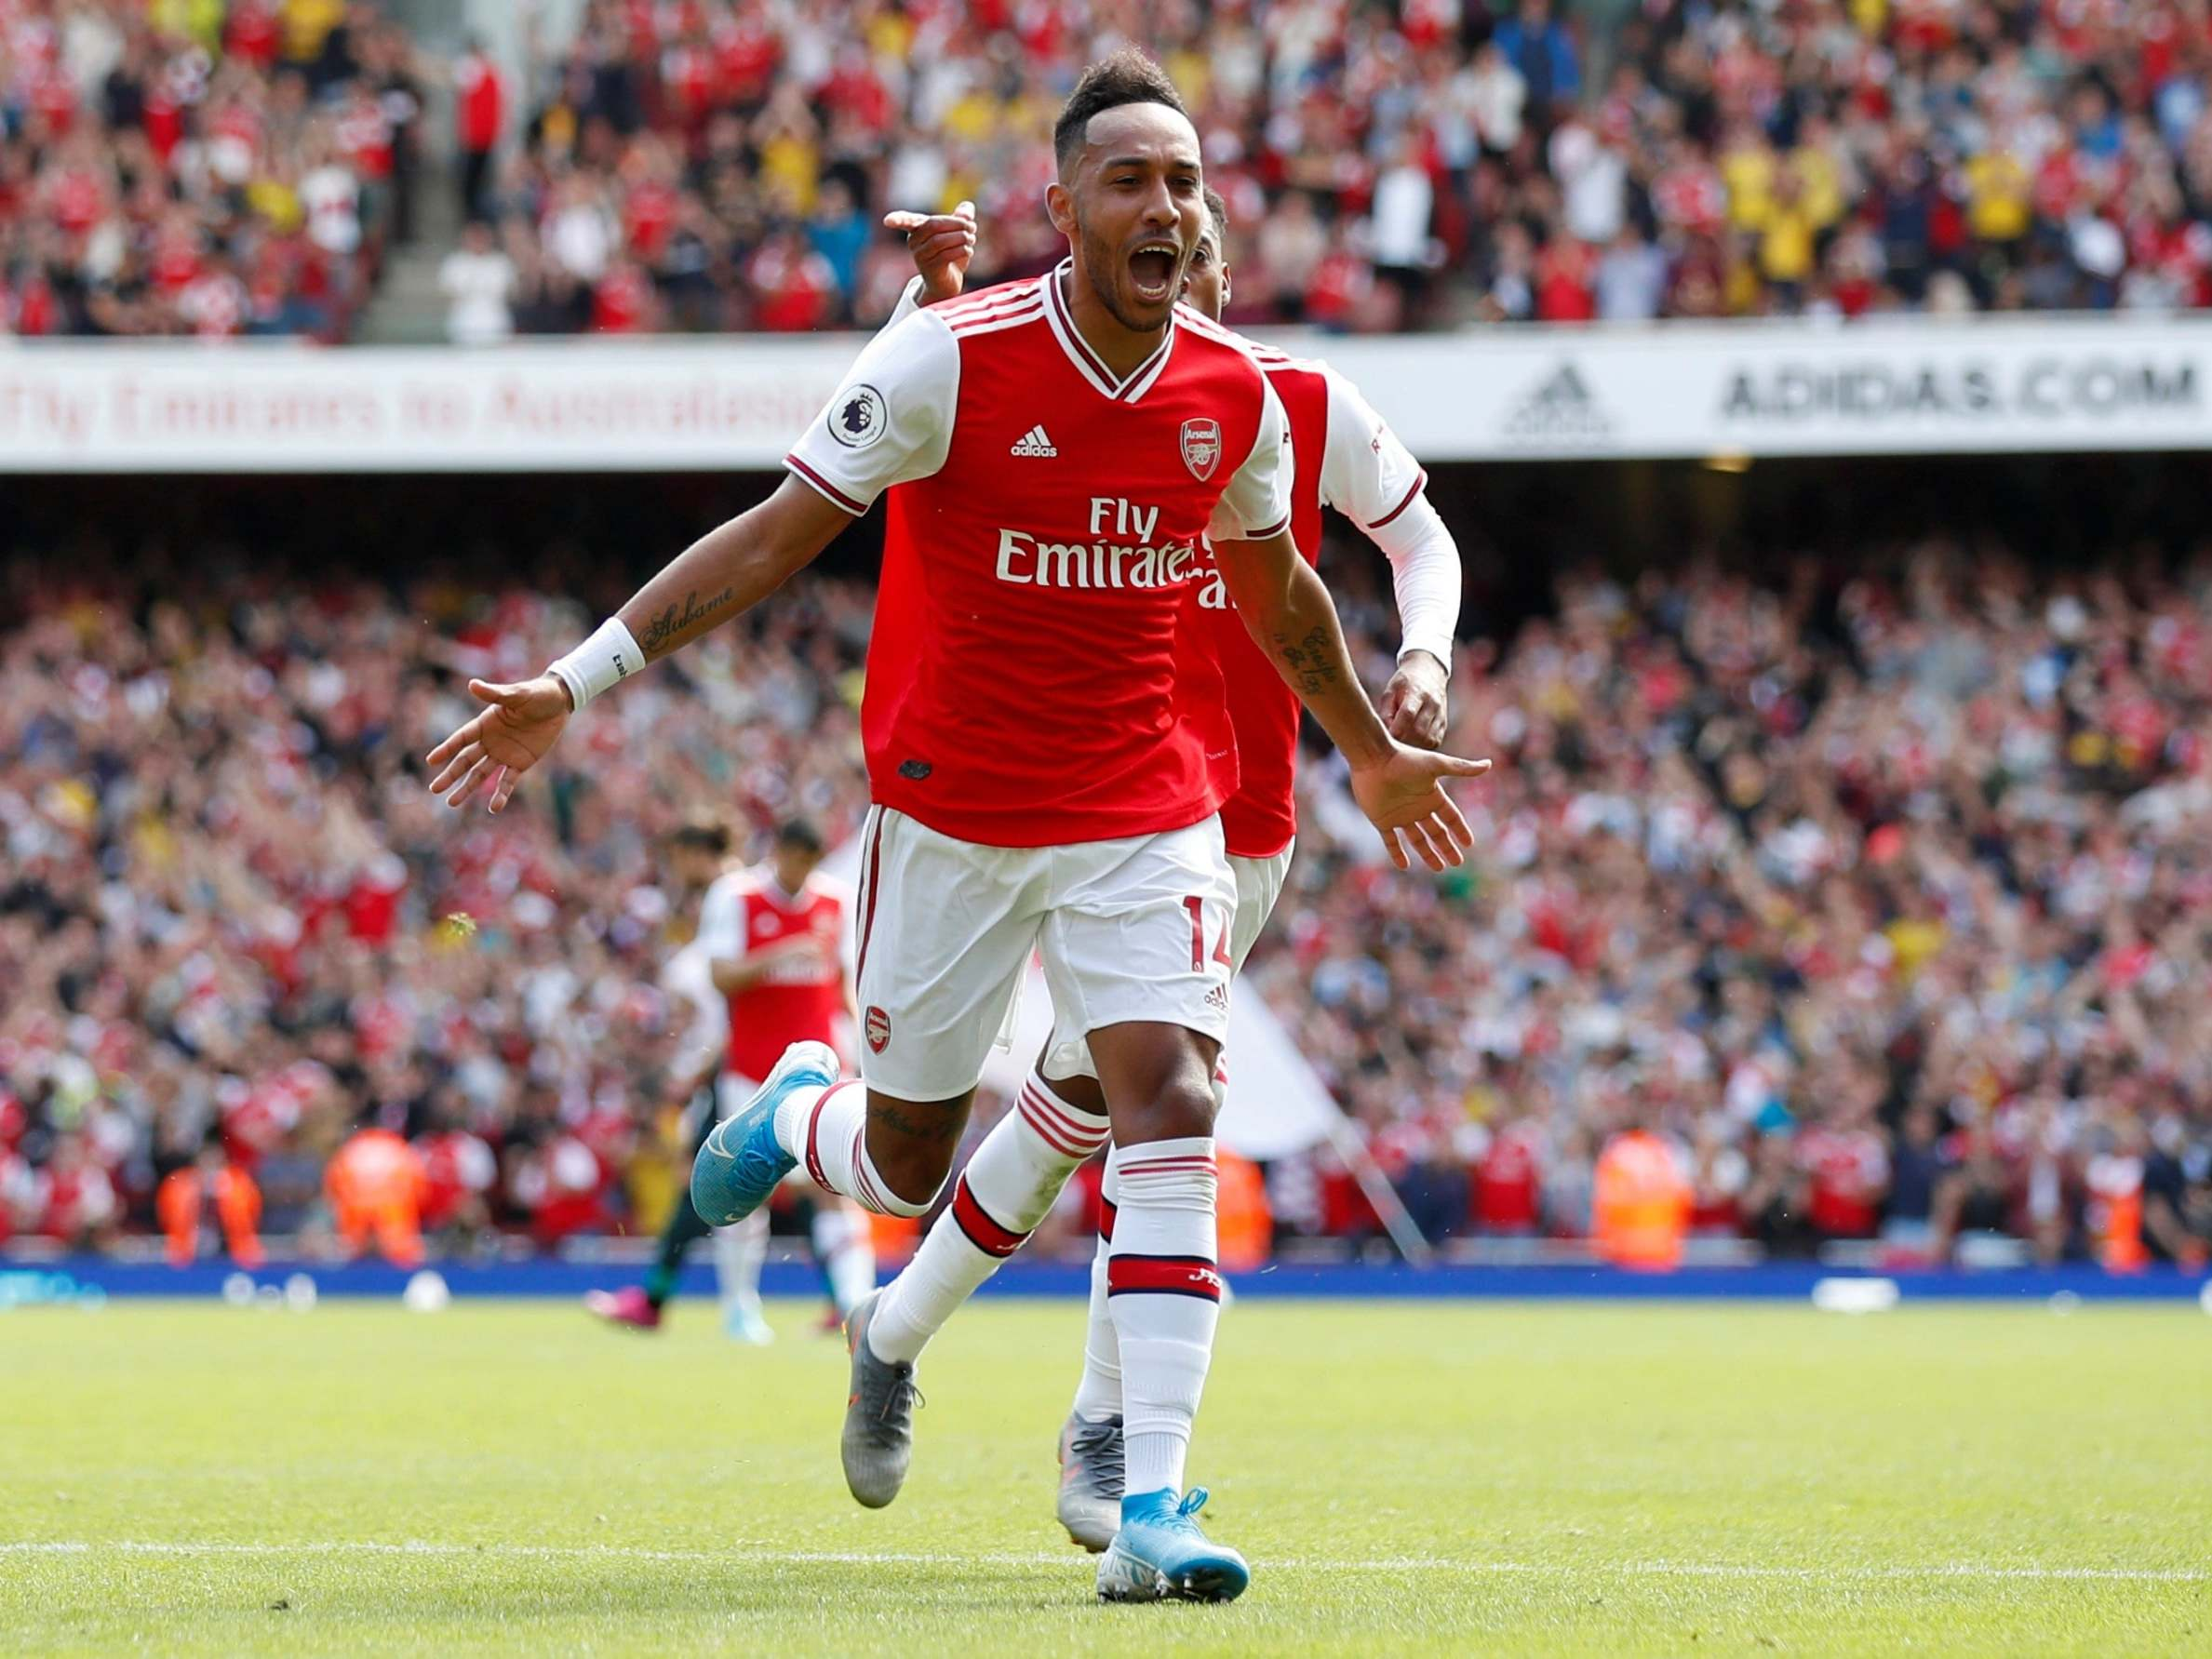 Arsenal news: Pierre-Emerick Aubameyang believes Gunners can challenge for Premier League title